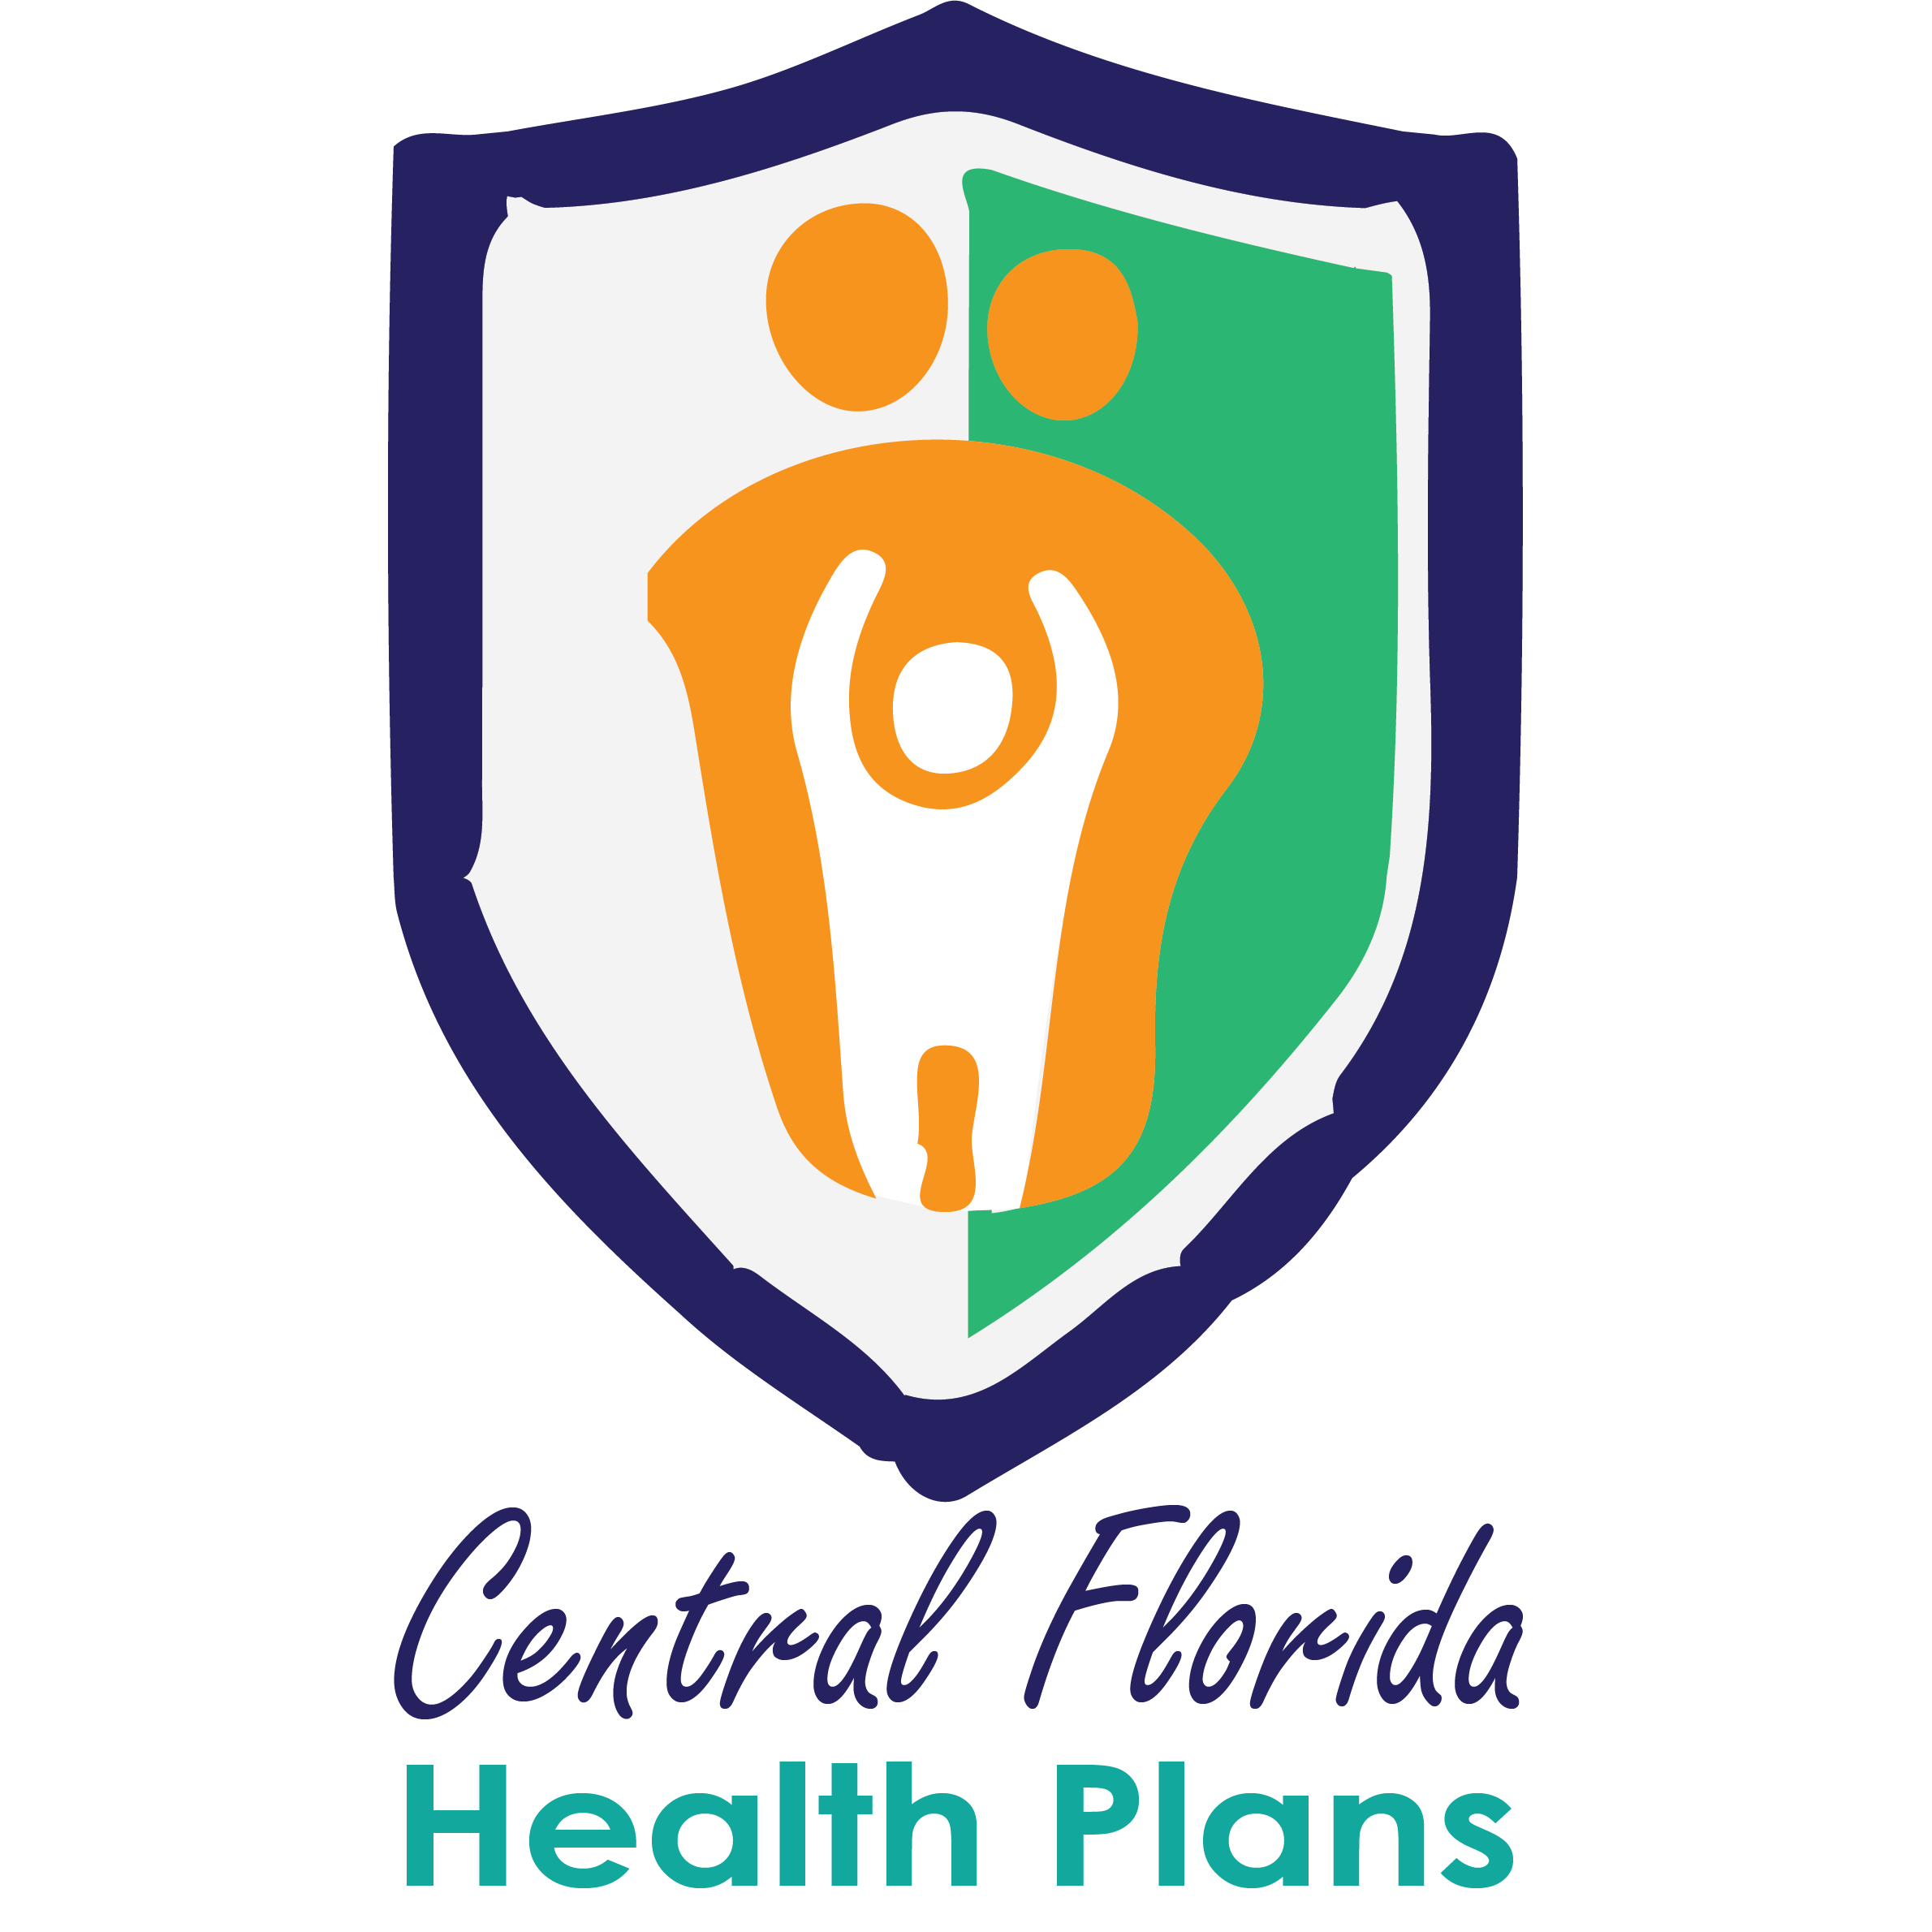 Central Florida Health Plans